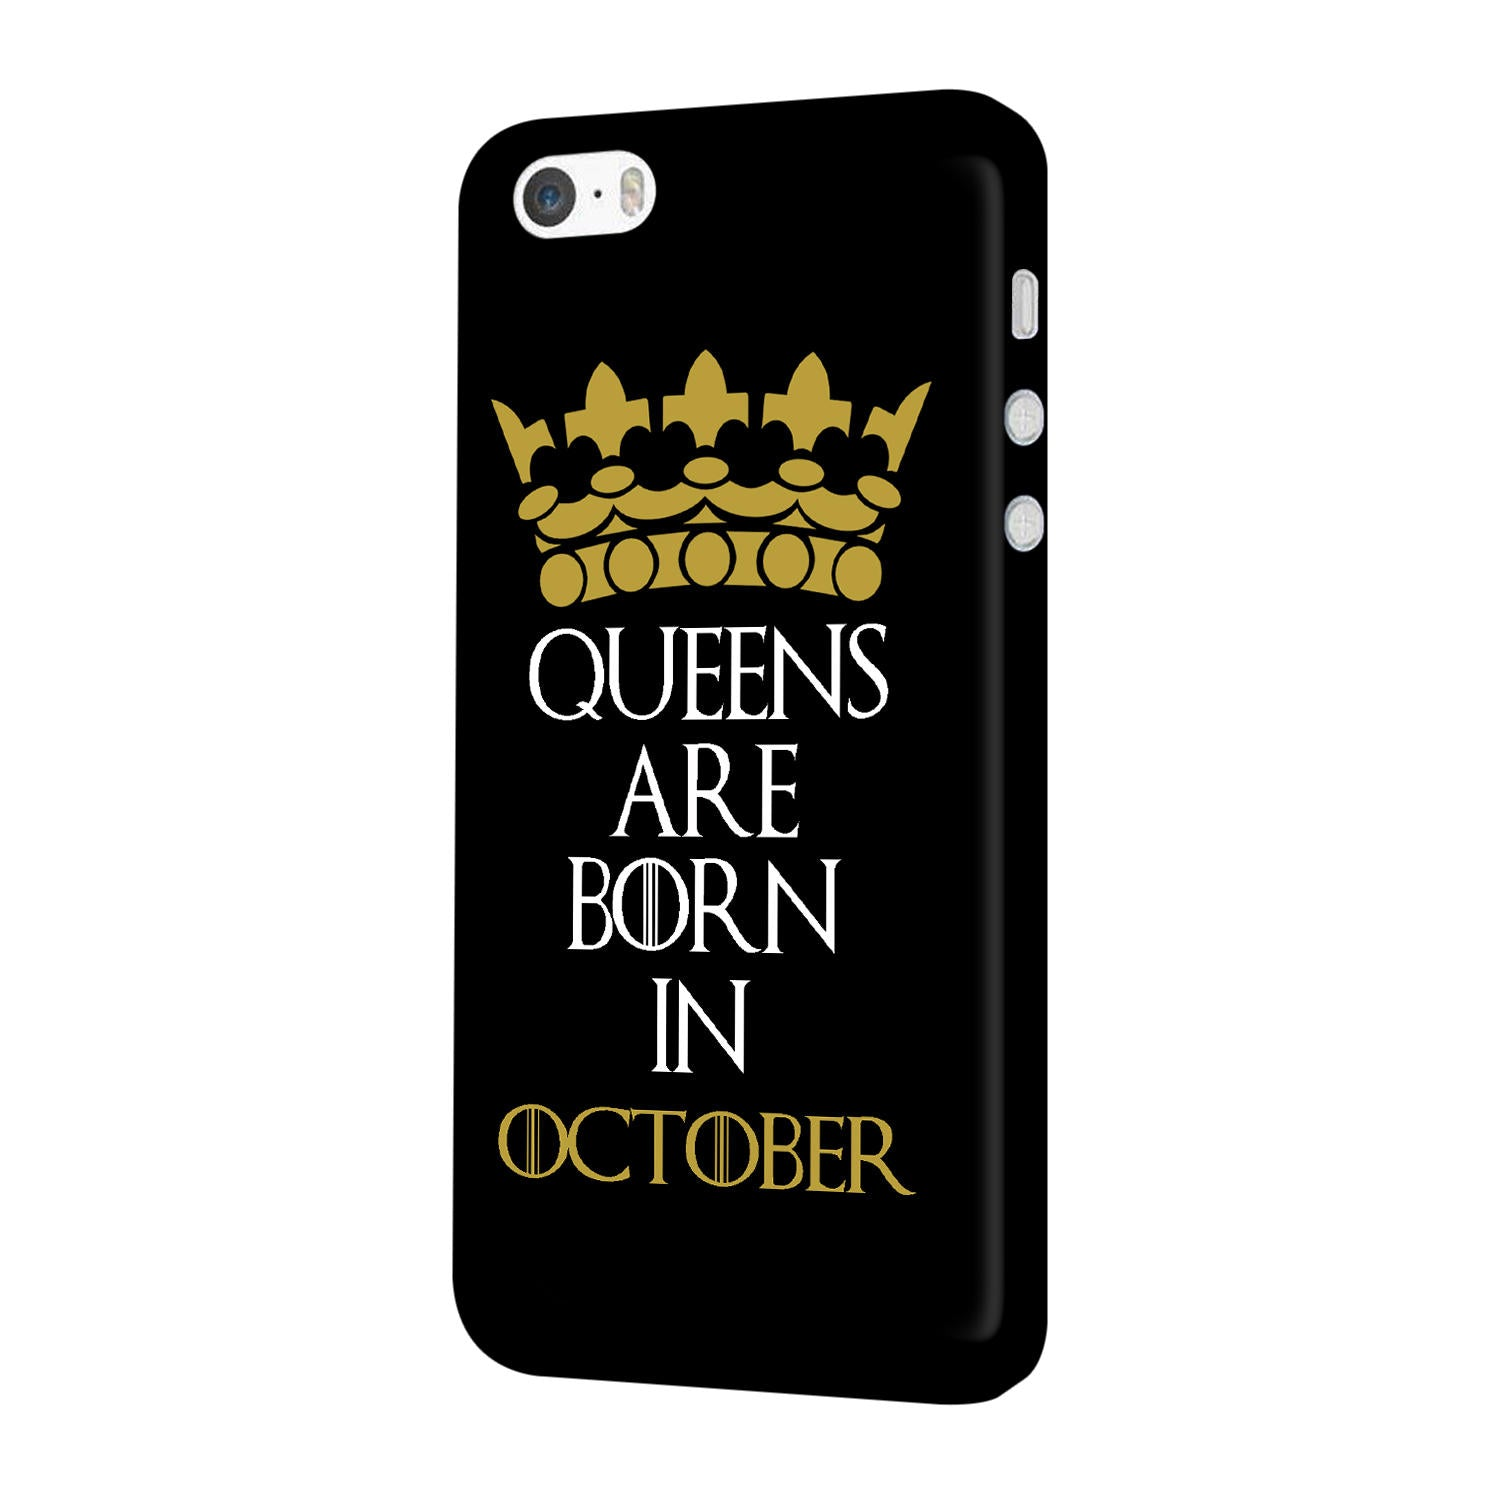 Queens October iPhone 5 Mobile Cover Case - MADANYU